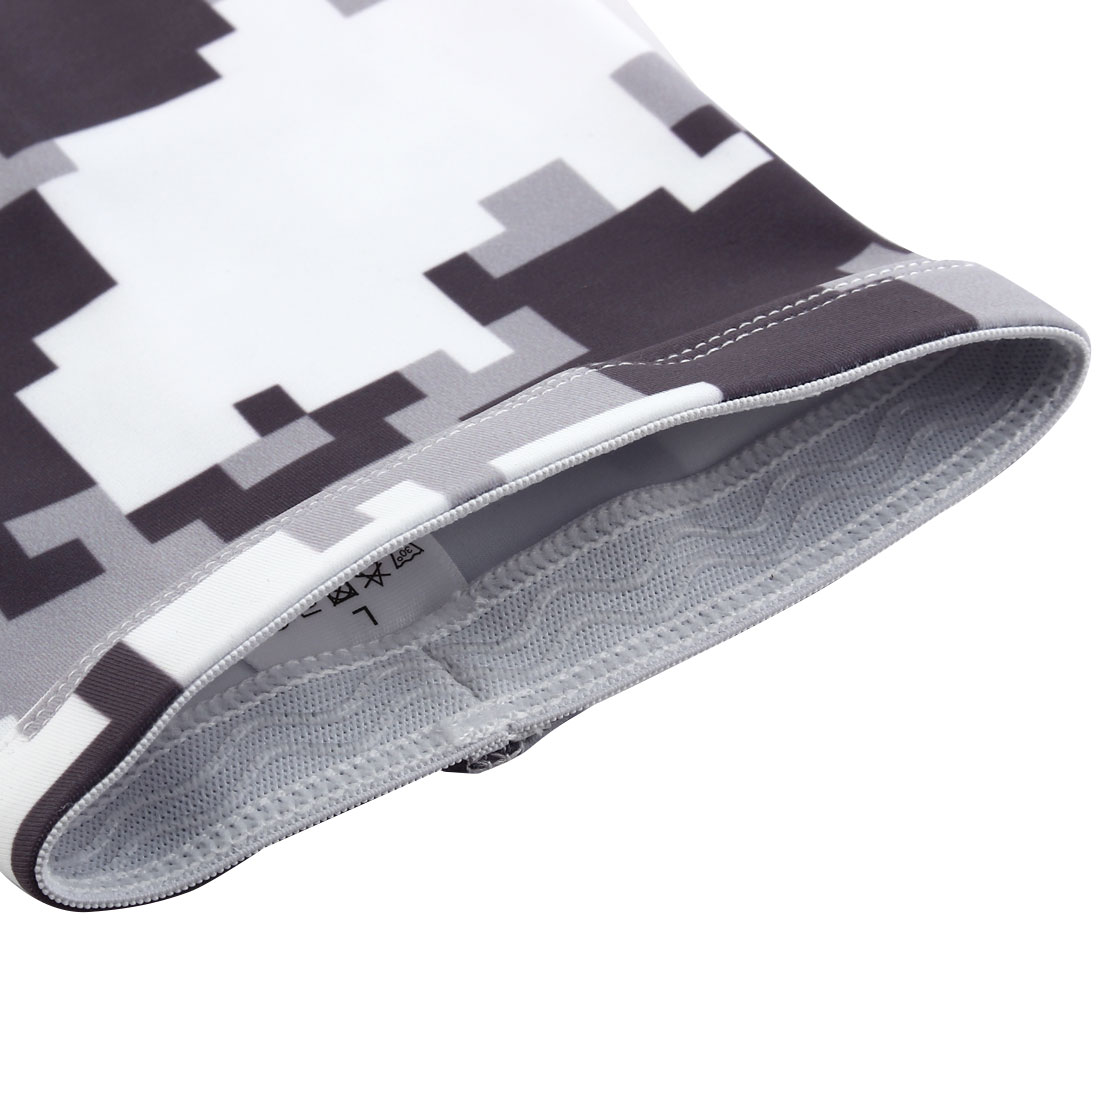 Sports Elbow Brace Wrap Sweat-absorption Arm Sleeves Support Camouflage XL Pair - image 3 of 5